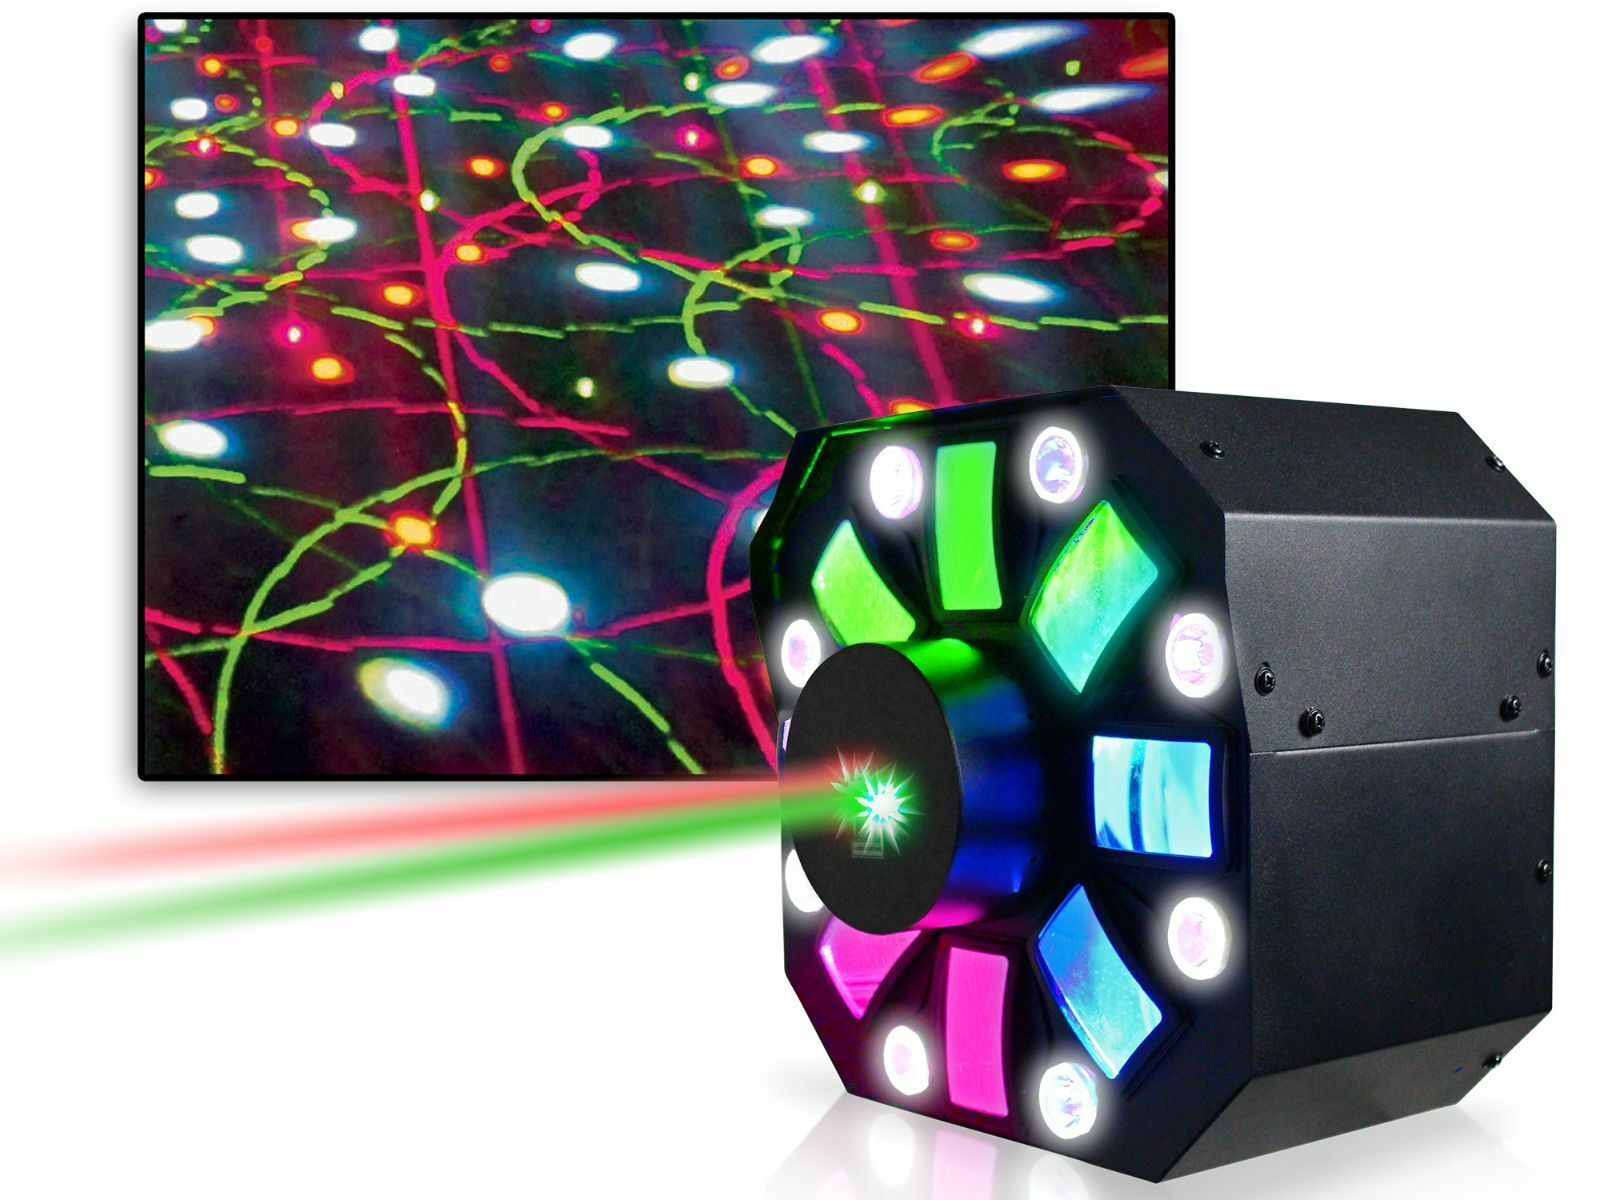 Technical Pro LGMEGAx DJ Multi Pattern Laser & LED Stage Effect Light with DMX